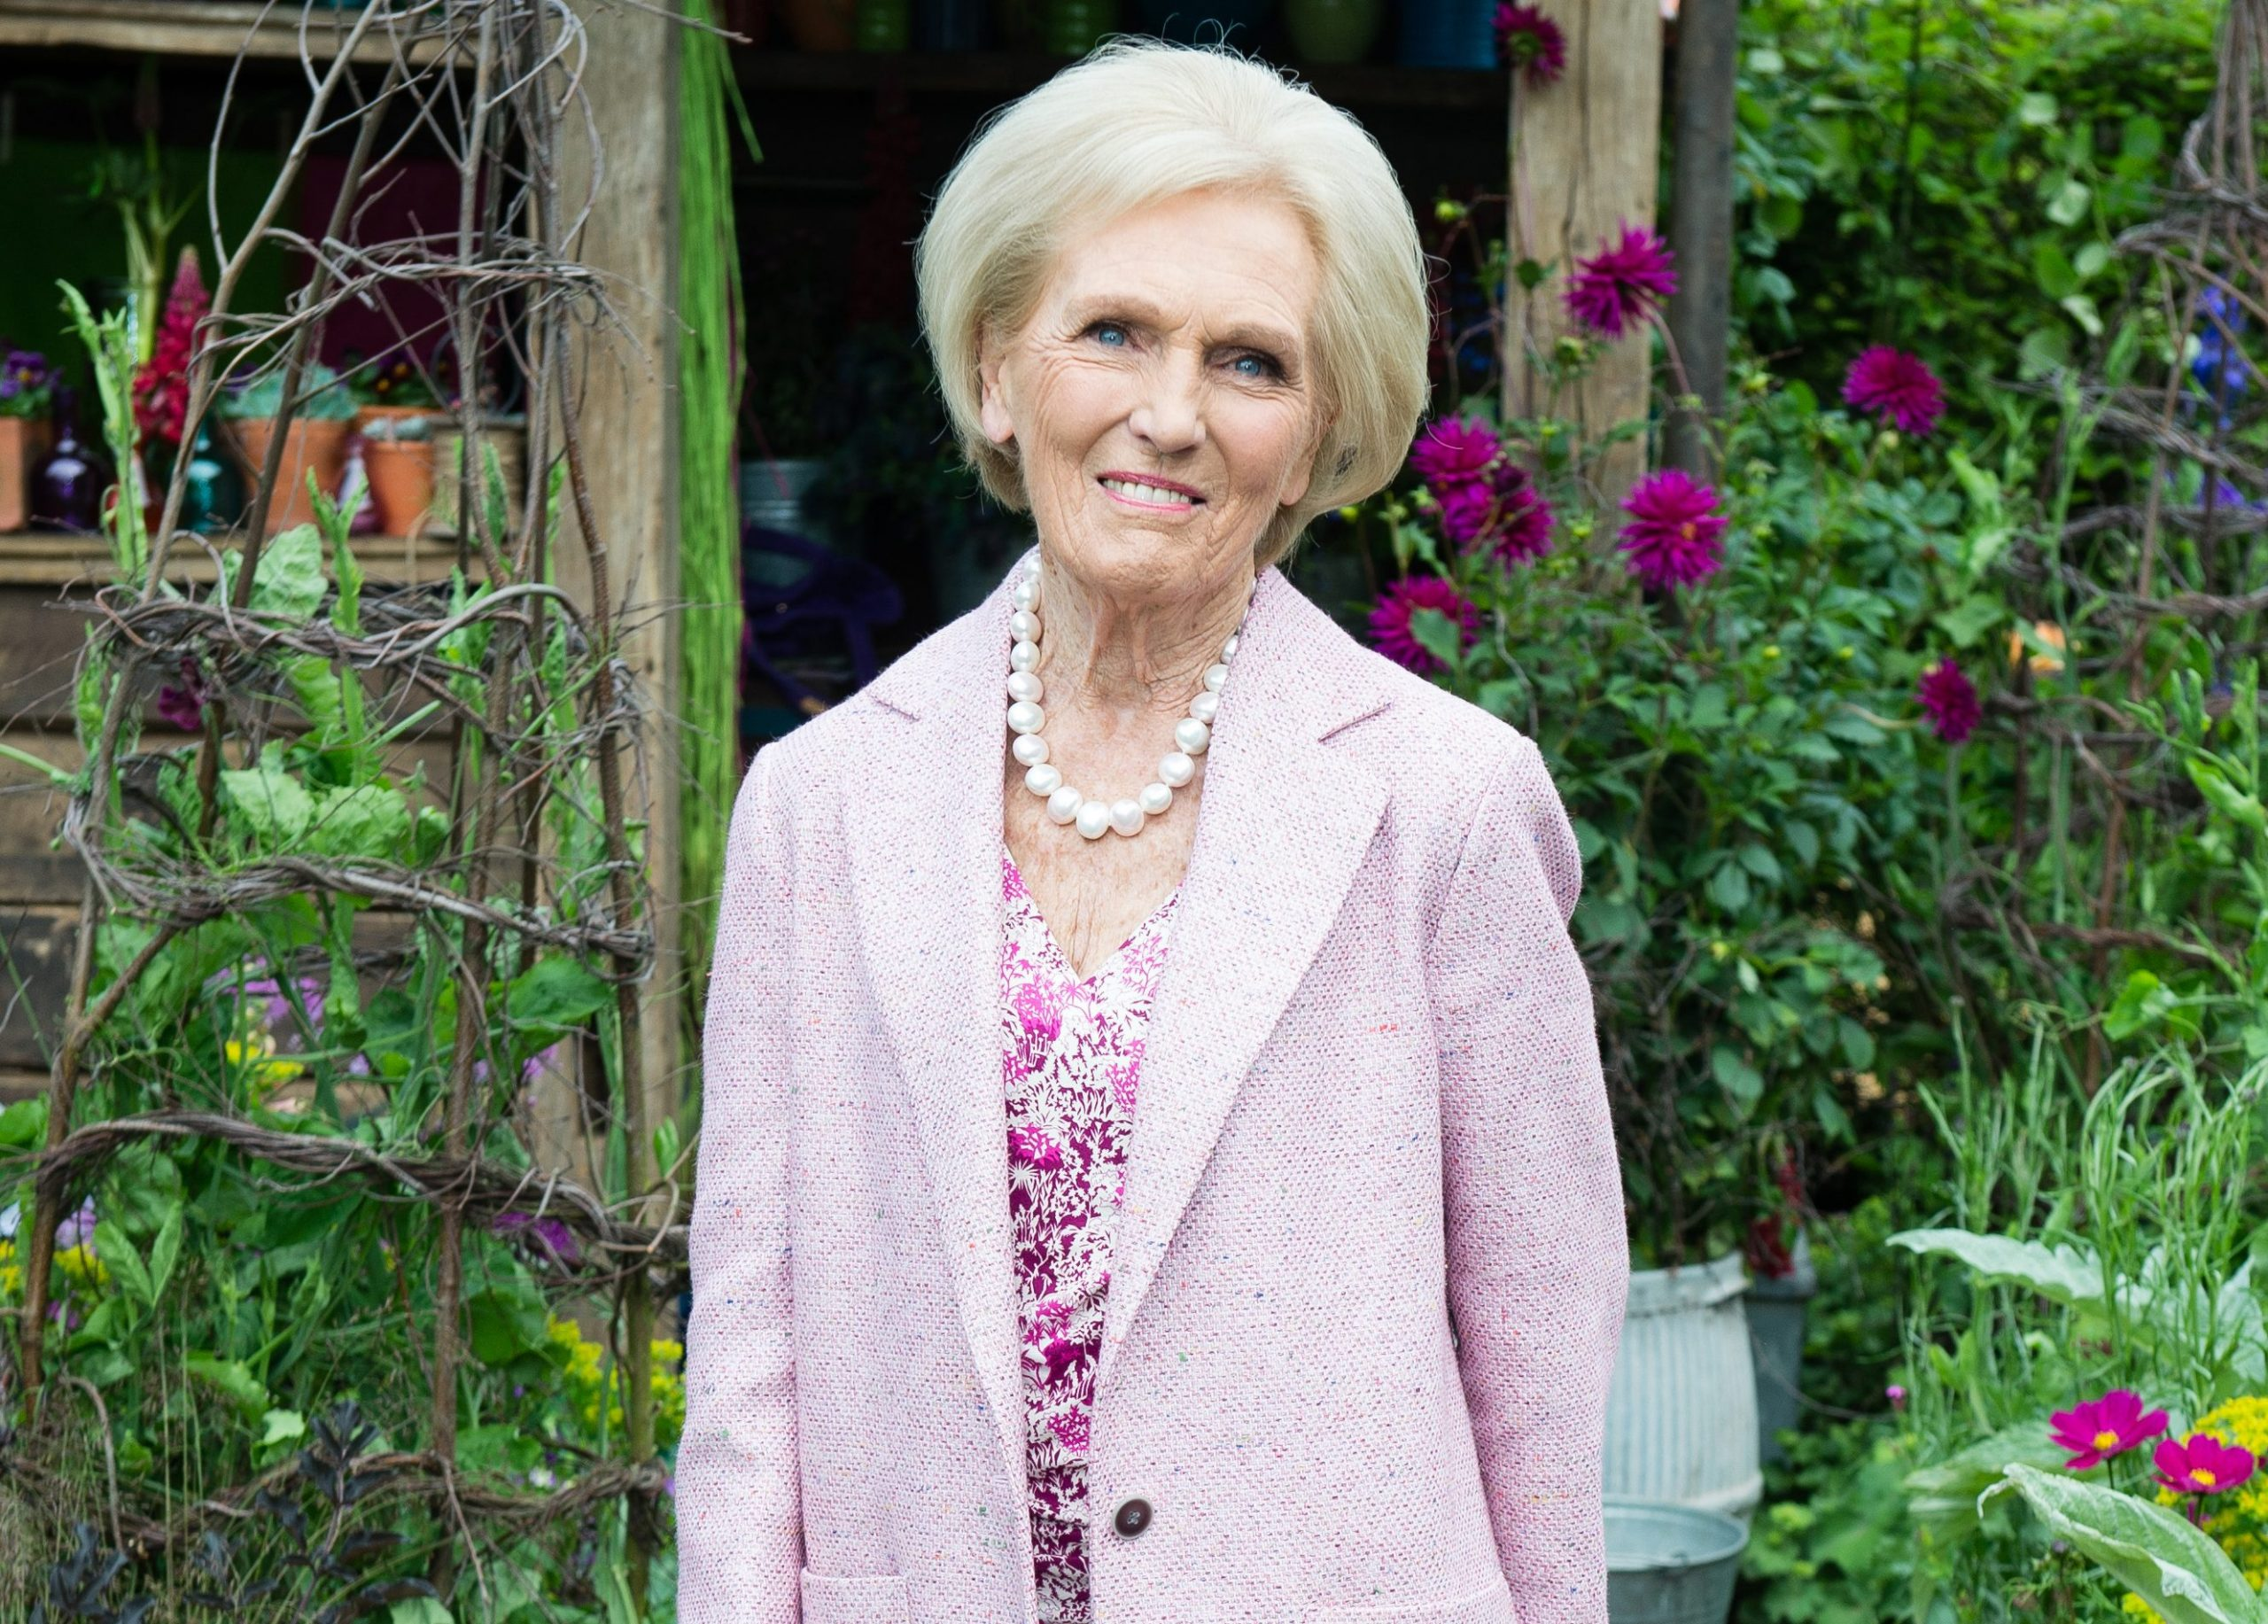 mary berry at the Chelsea Flower Show